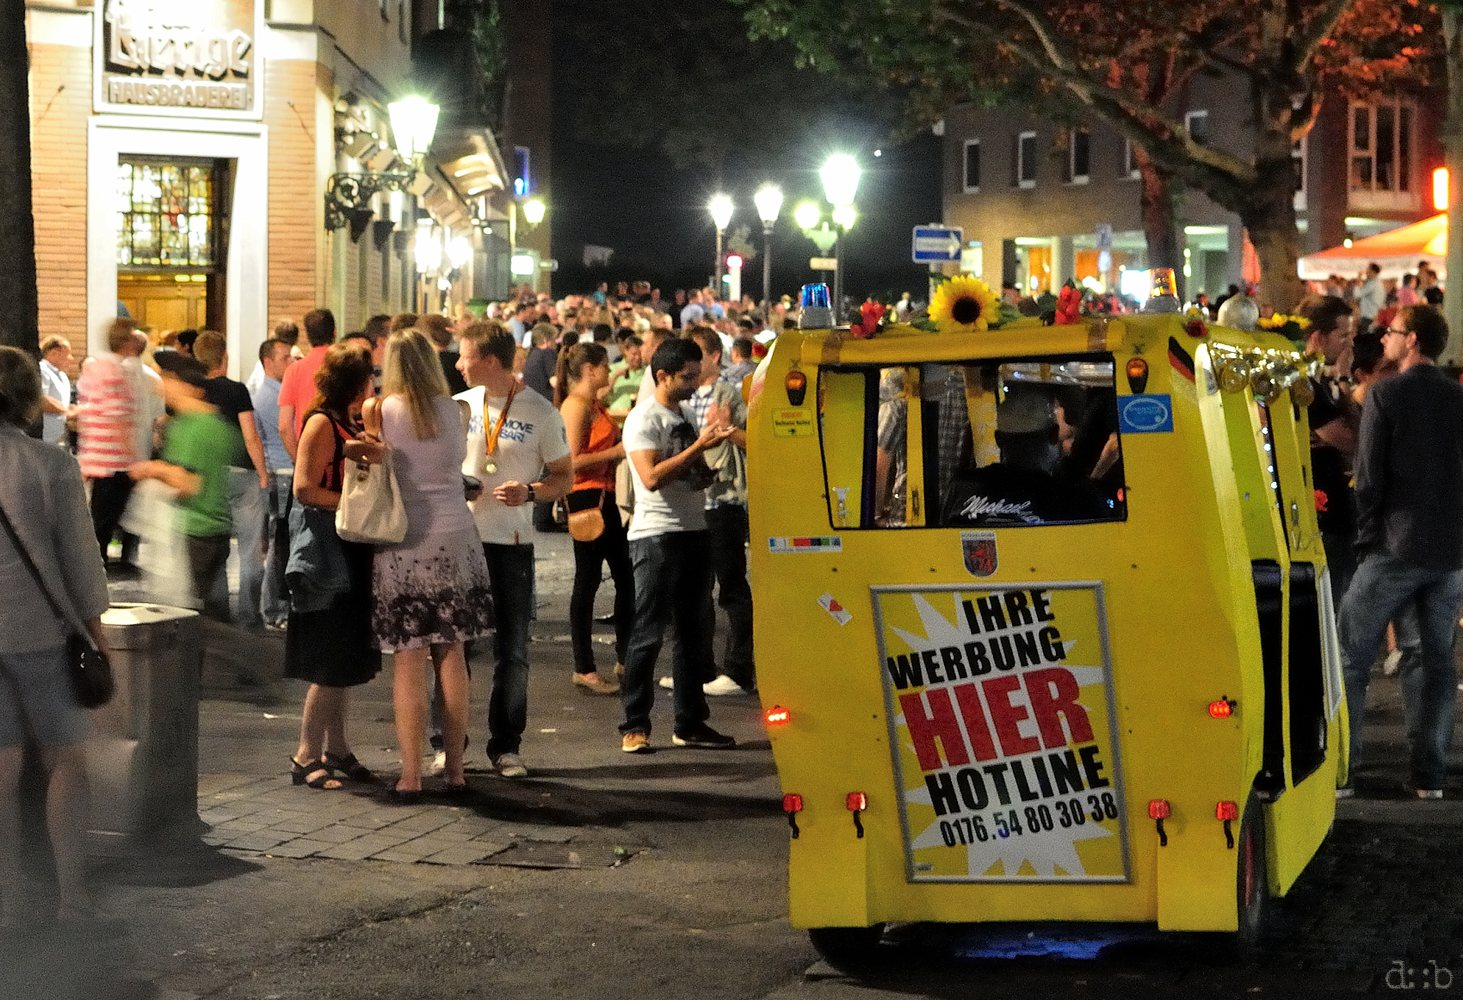 A caddy cab is waiting for passengers right in the crowd before a crafts brewery.